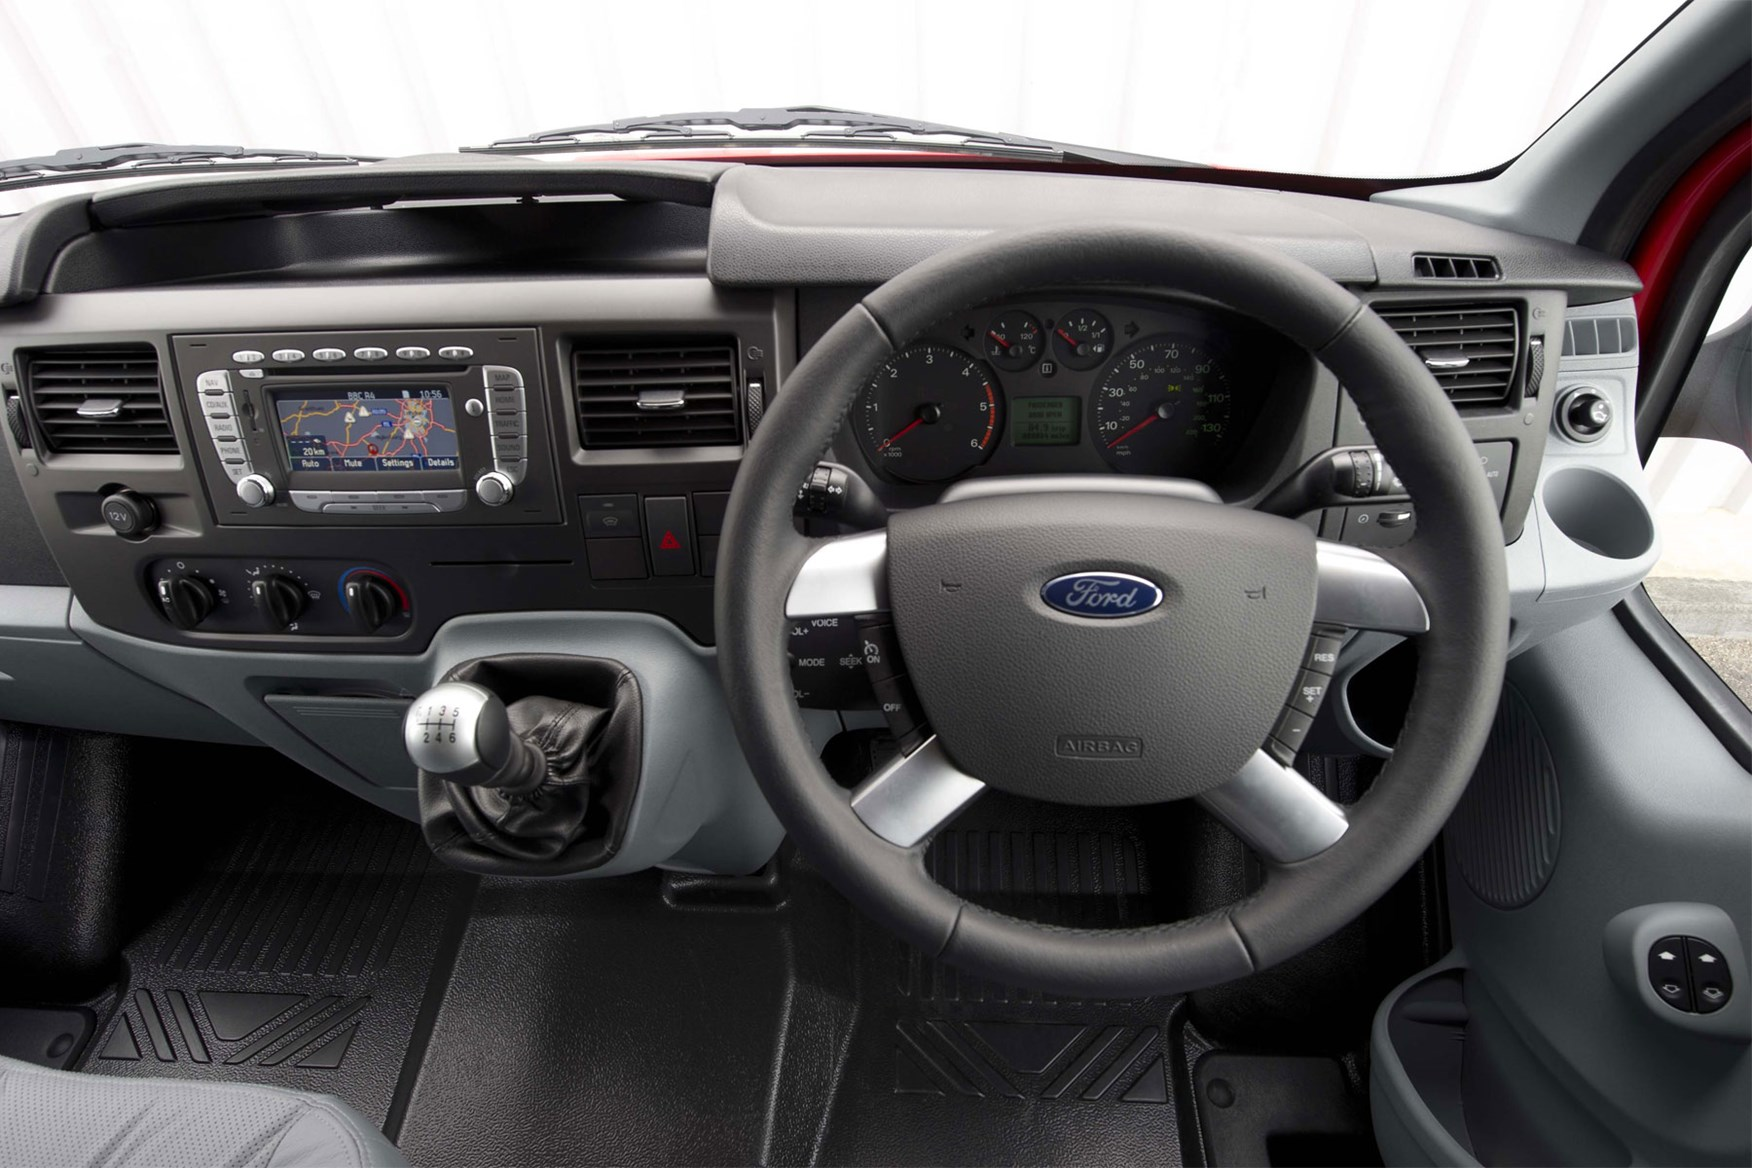 Ford Transit (2006-2014) cab interior